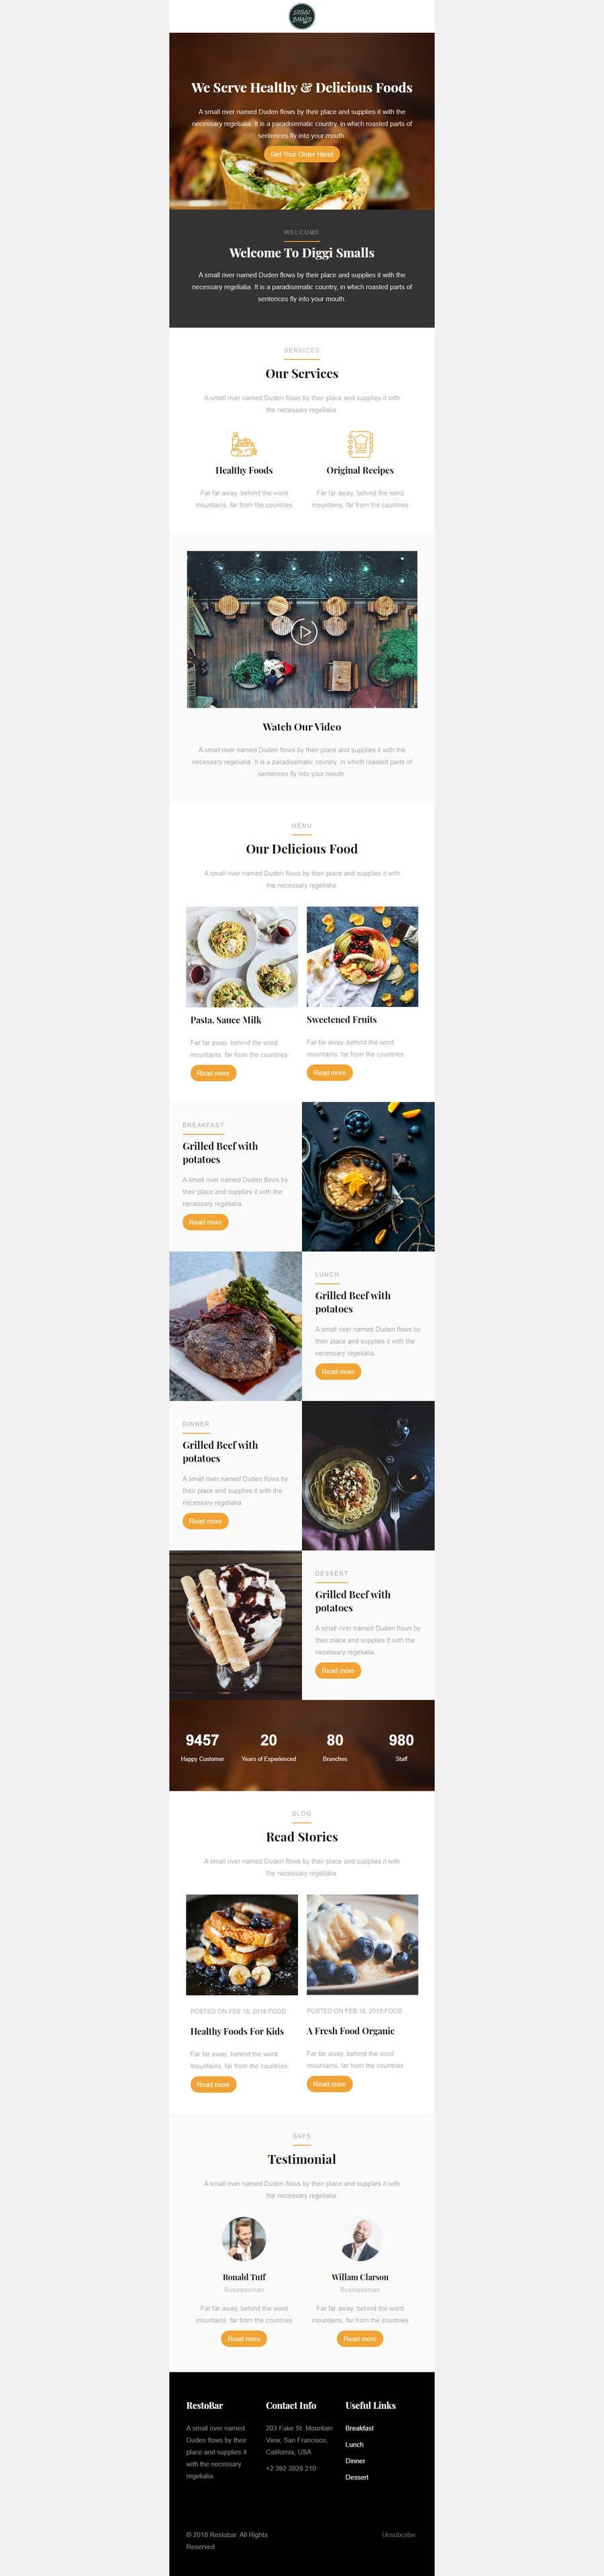 Konkurrenceindlæg #                                        16                                      for                                         Create a HTML email template design and set it up on Klaviyo